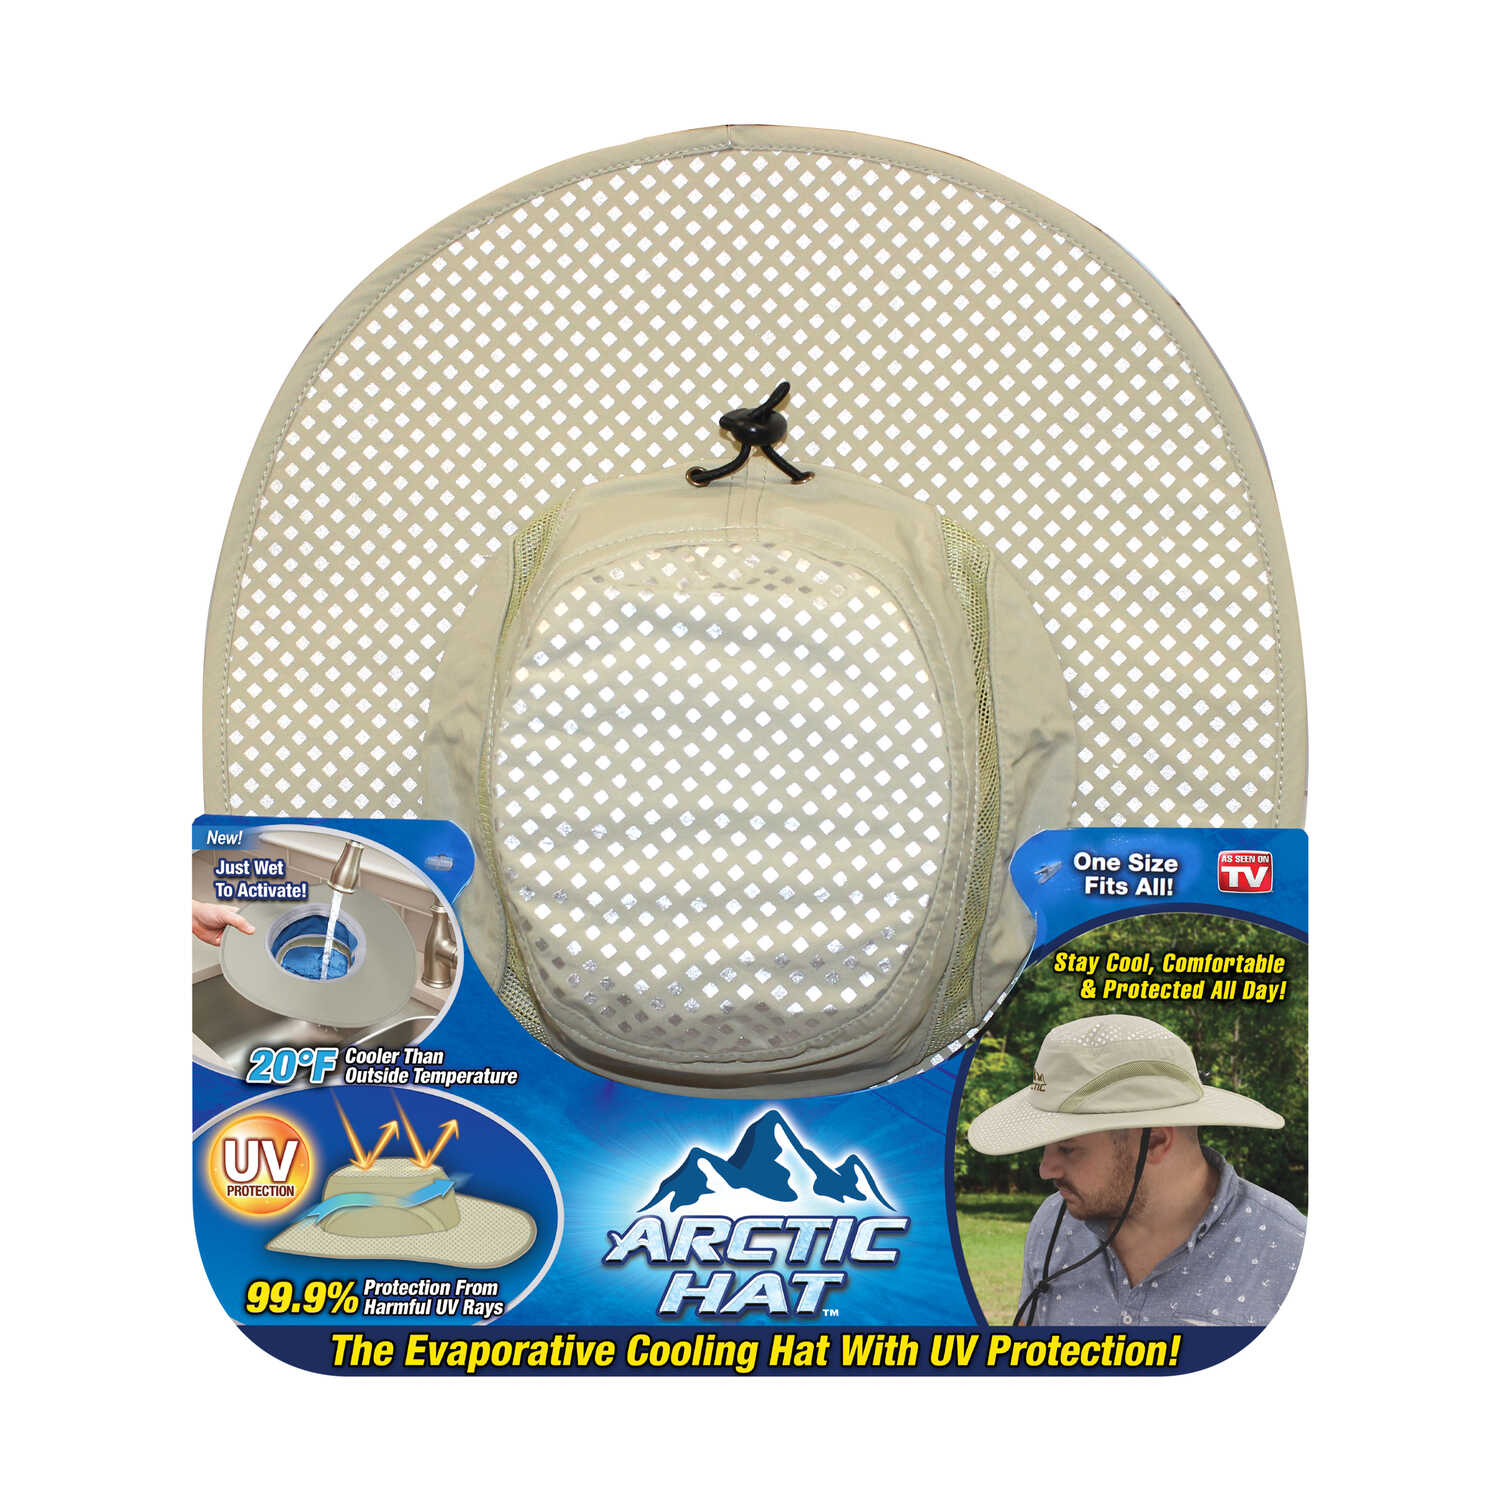 e2ec0b6c18c4b Arctic Hat As Seen On TV Evaporative Cooling Hat Beige One Size Fits Most -  Ace Hardware